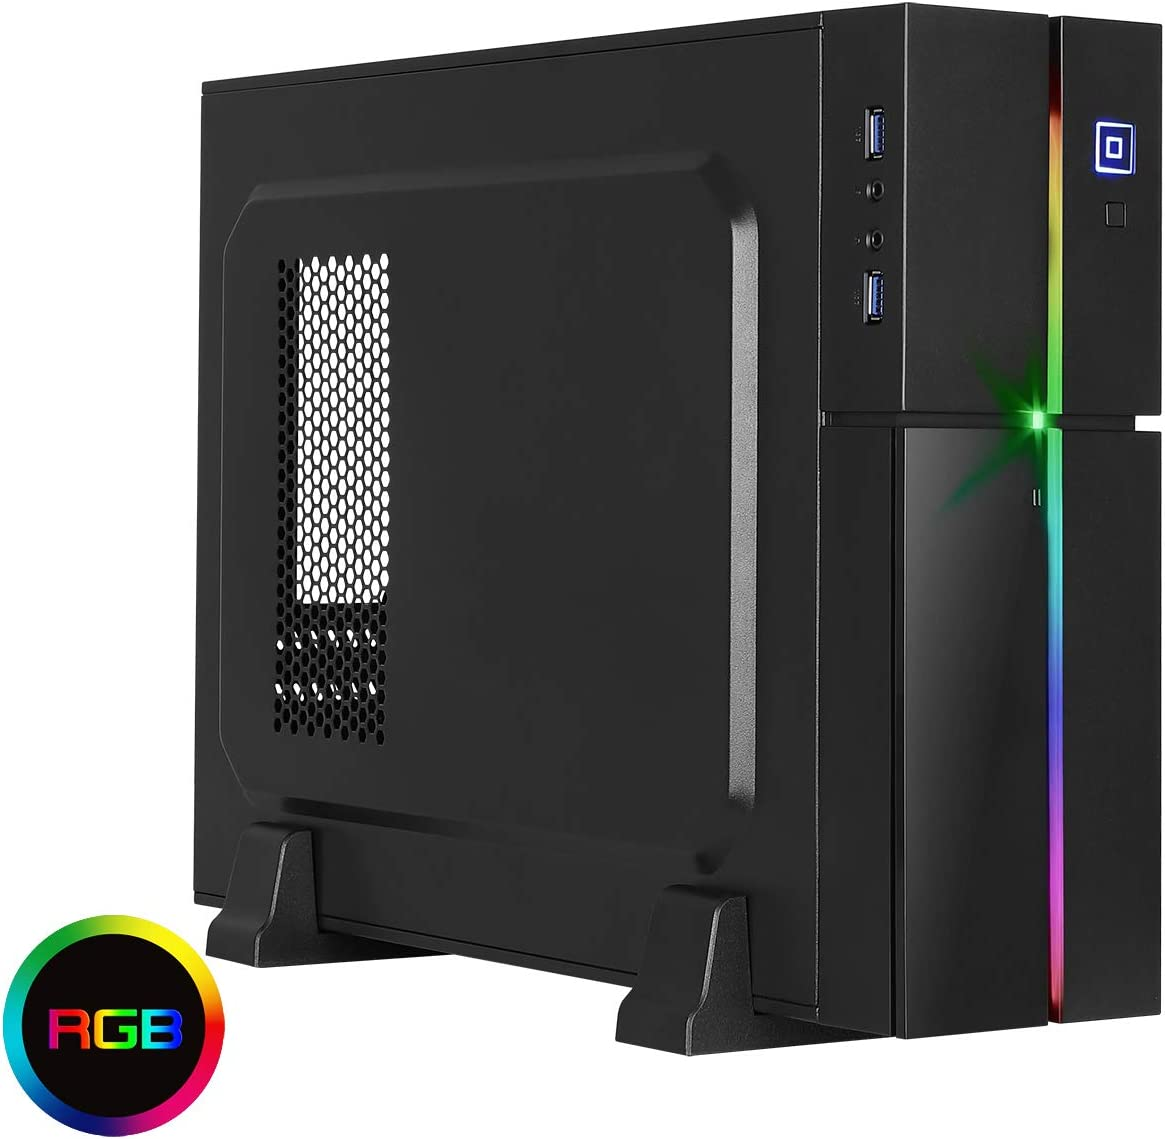 Aerocool Playa Desktop RGB PC Gaming Case,MATX, ITX, 13 Lighting Modes, 1 x 8cm Fan Included, Make Your Own Rules | Black